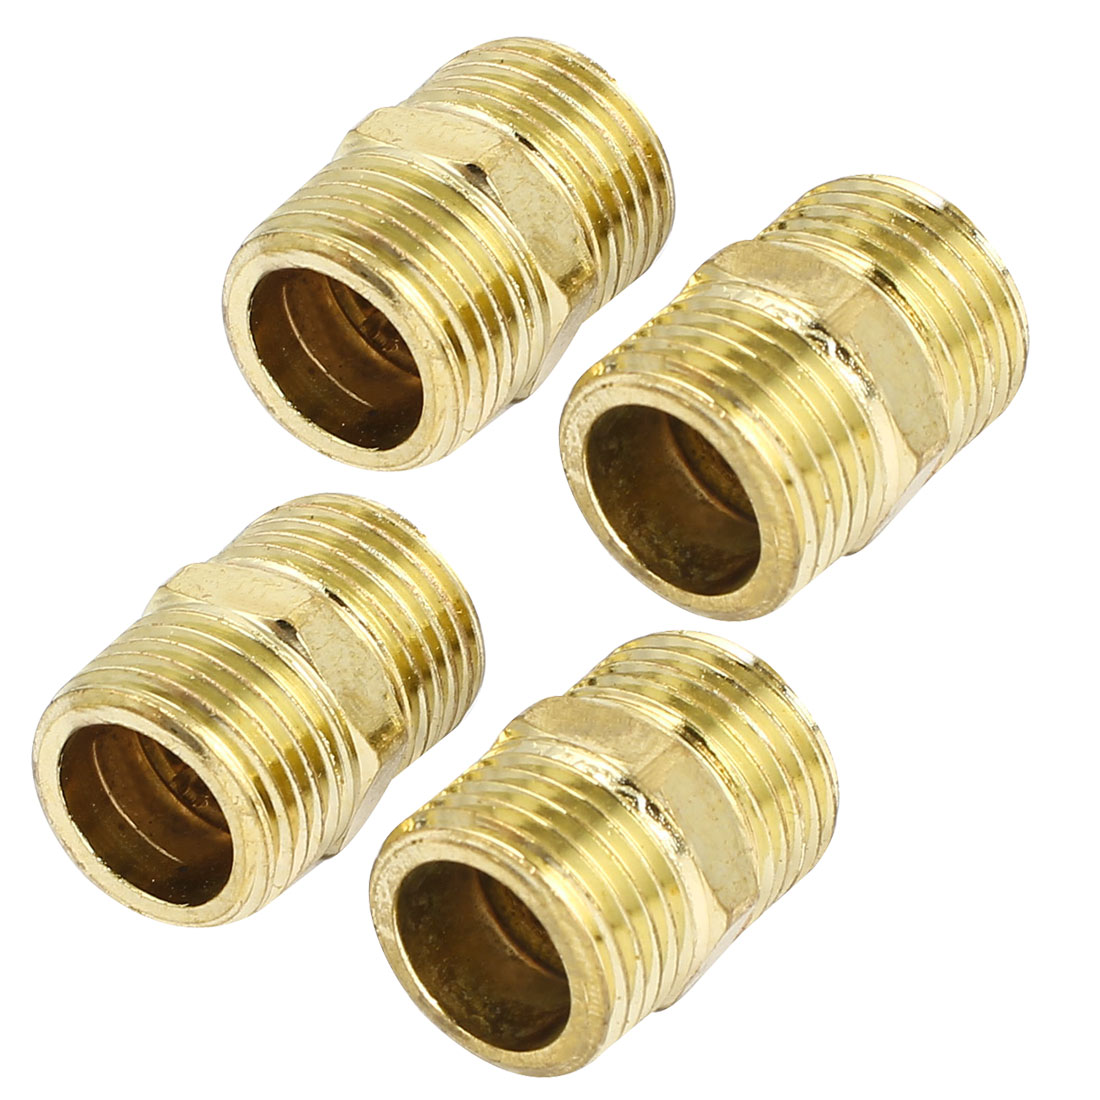 1/2BSP to 1/2BSP Male Thread Air Water Pipe Fitting Hex Nipple Gold Tone 4Pcs